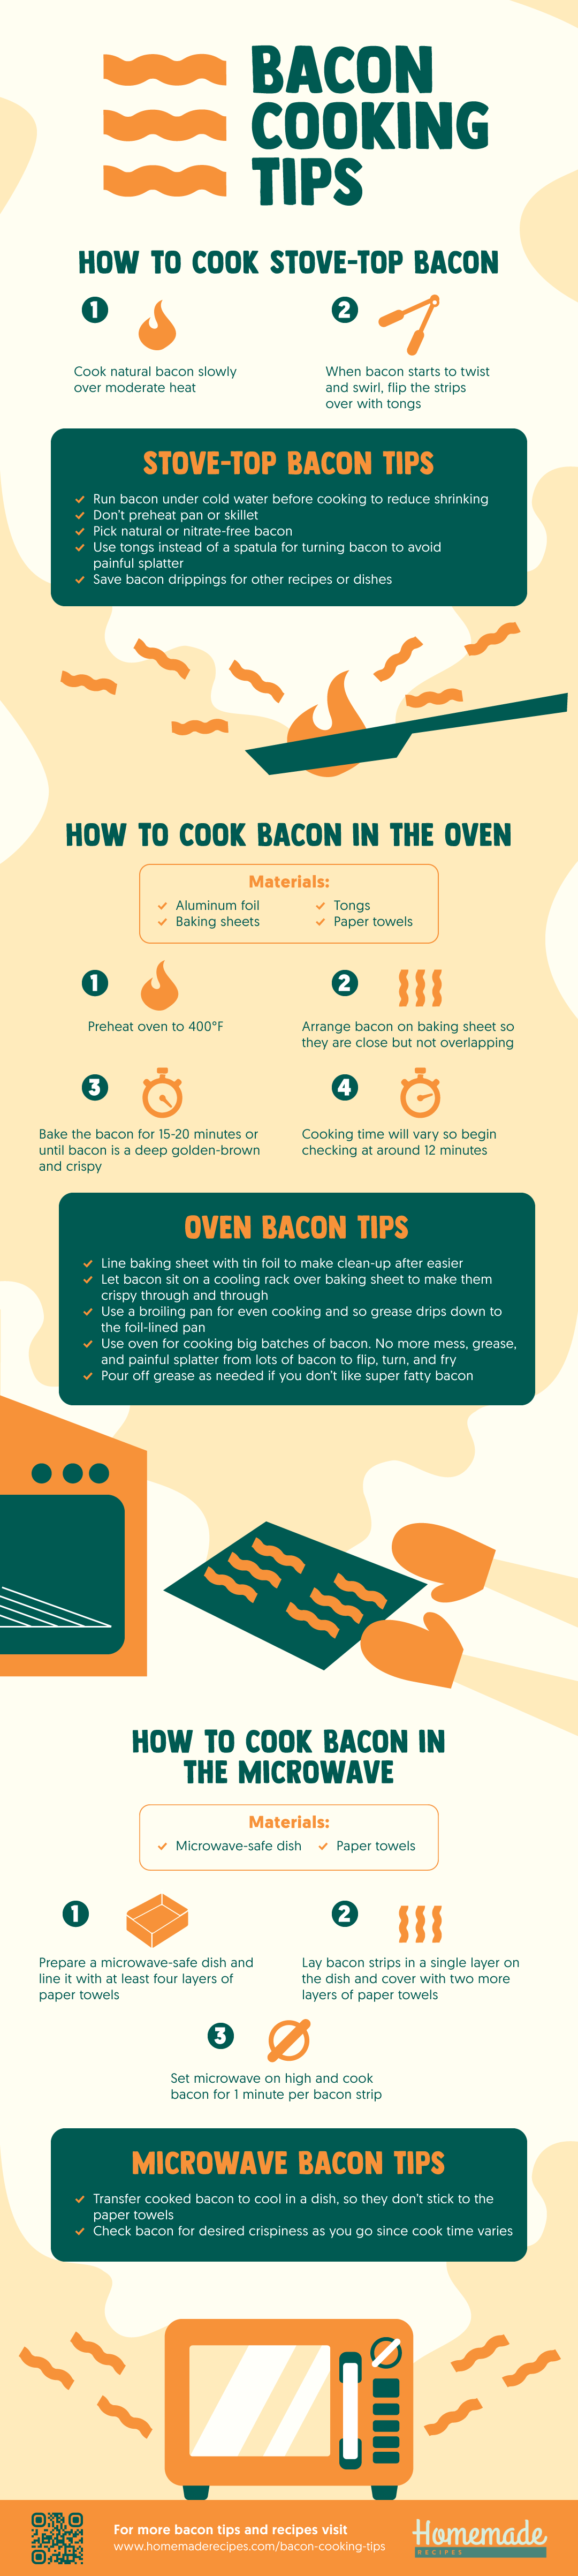 Bacon Cooking 101: Bacon Cooking Tips For The Perfect Crisp homemaderecipes.com/bacon-cooking-tips